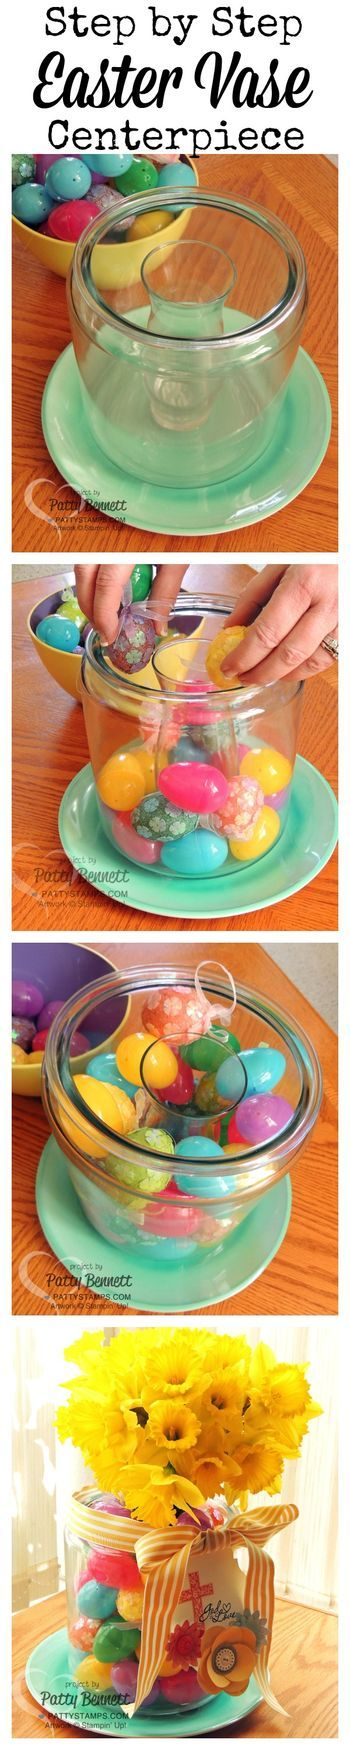 Stock up on plastic Easter eggs from Dollar Tree to make this beautiful centerpiece.